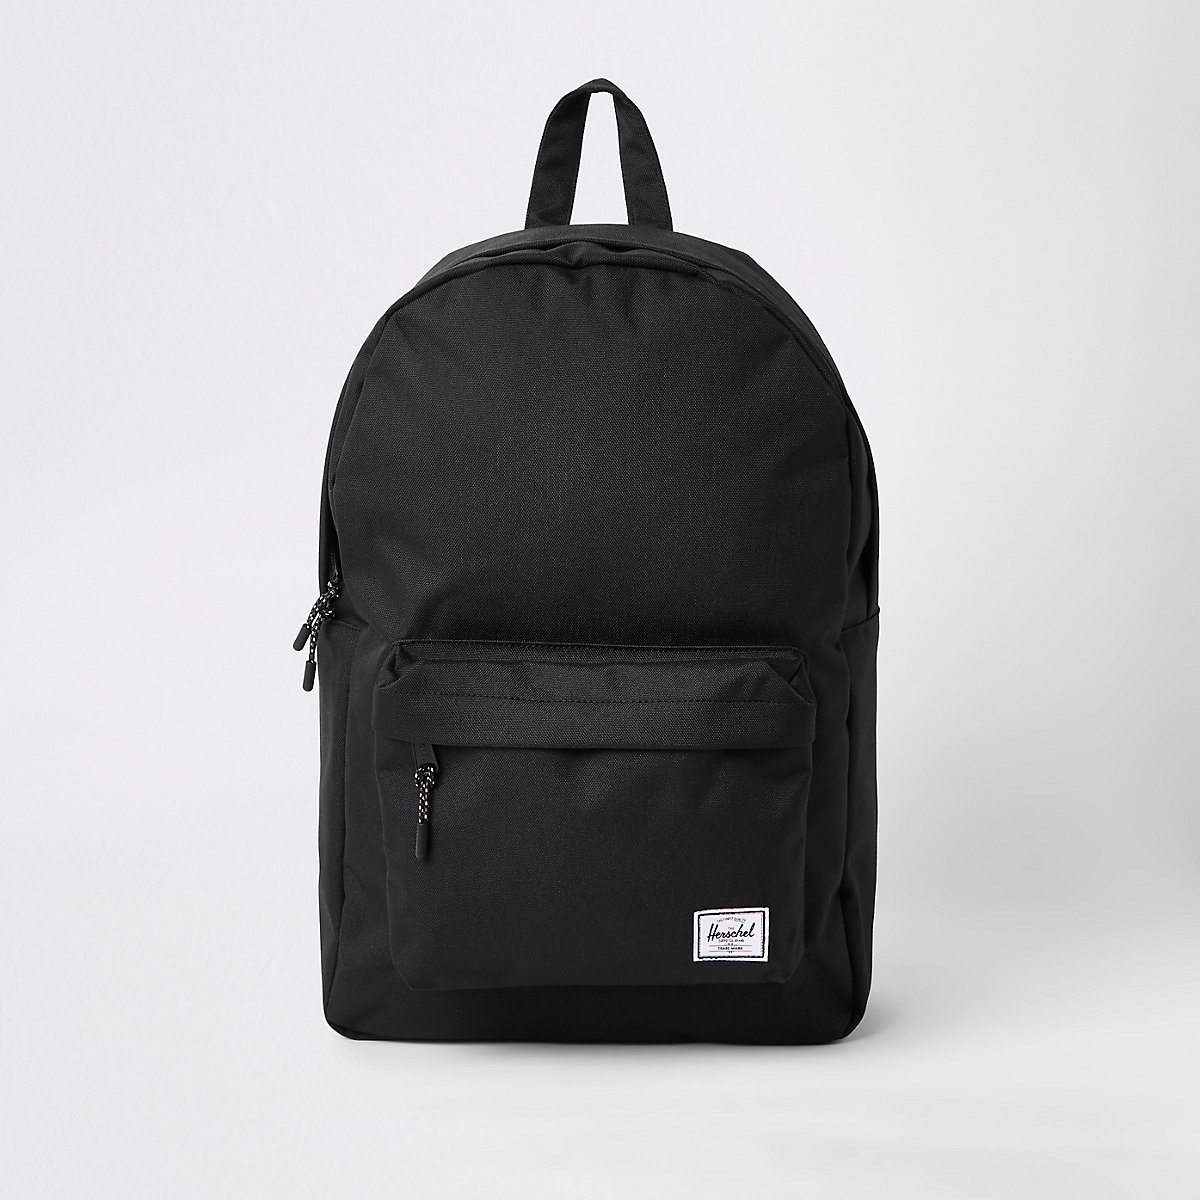 6222889a43e2 Herschel black classic backpack - Backpacks   Backpacks - Bags - men